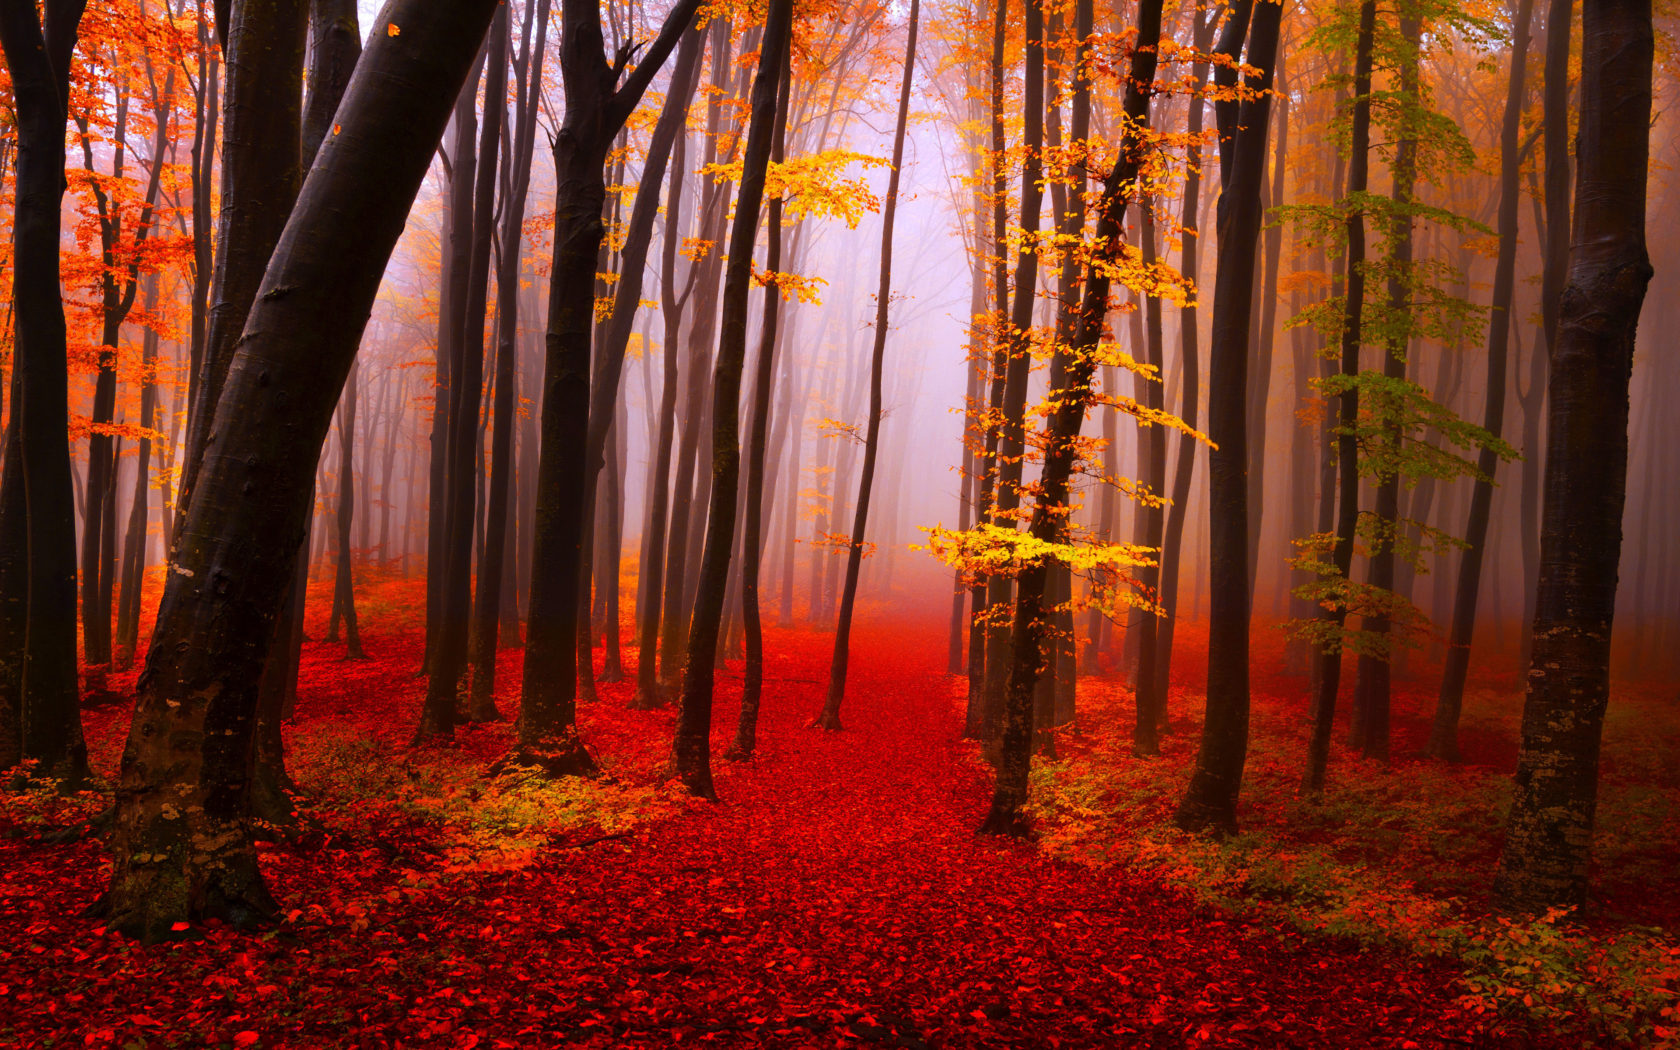 Fall Autumn Hd Wallpaper 1920x1080 Autumn Forest Path Trees Fog Fall Yellow And Red Leaves